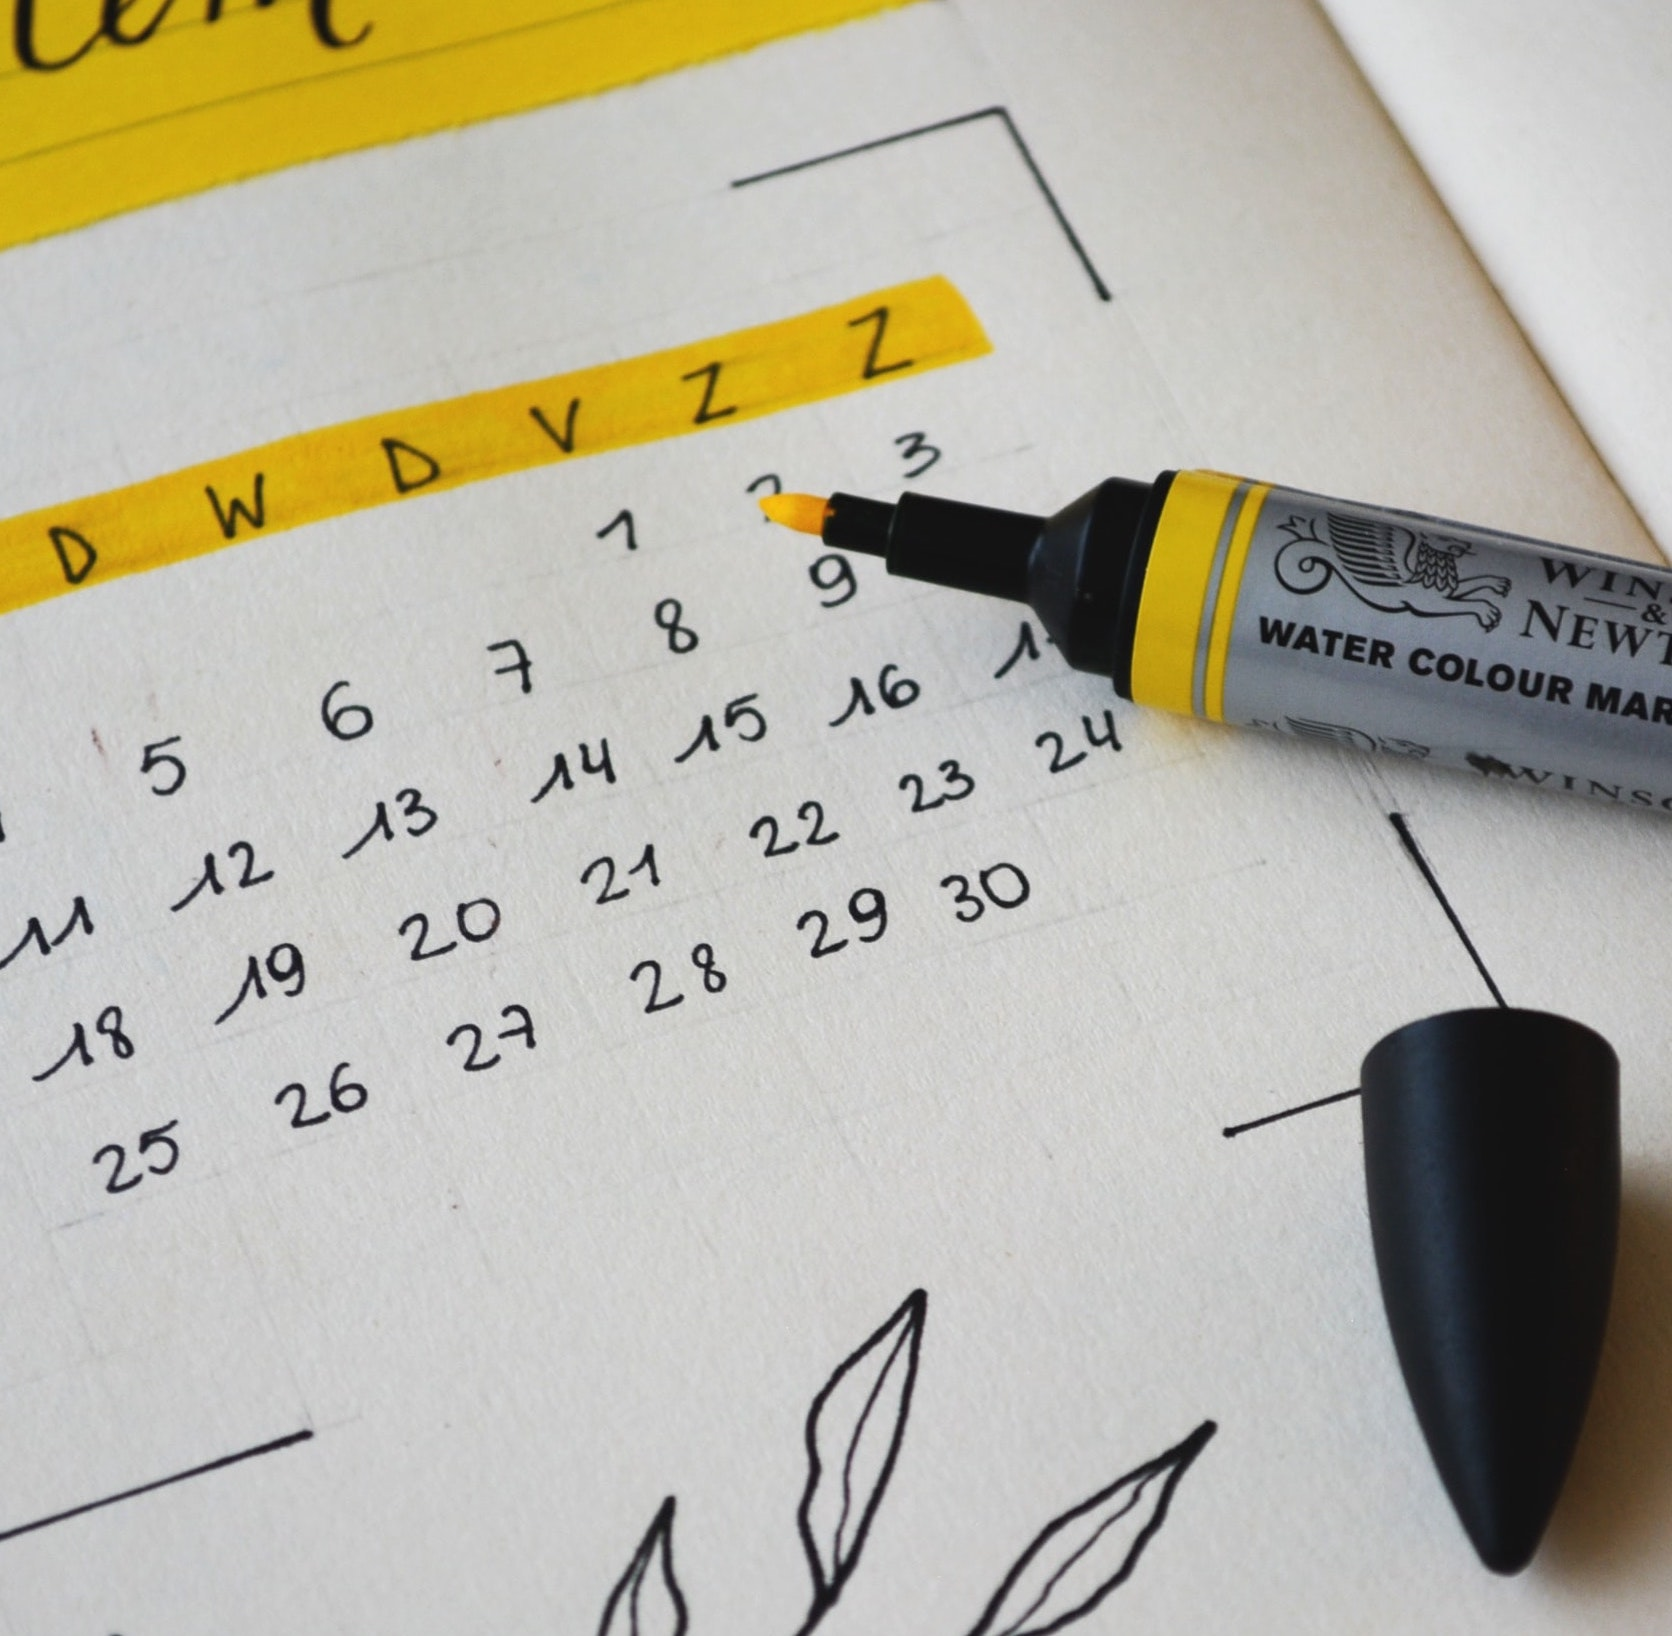 A highlighter pen highlighting a calendar